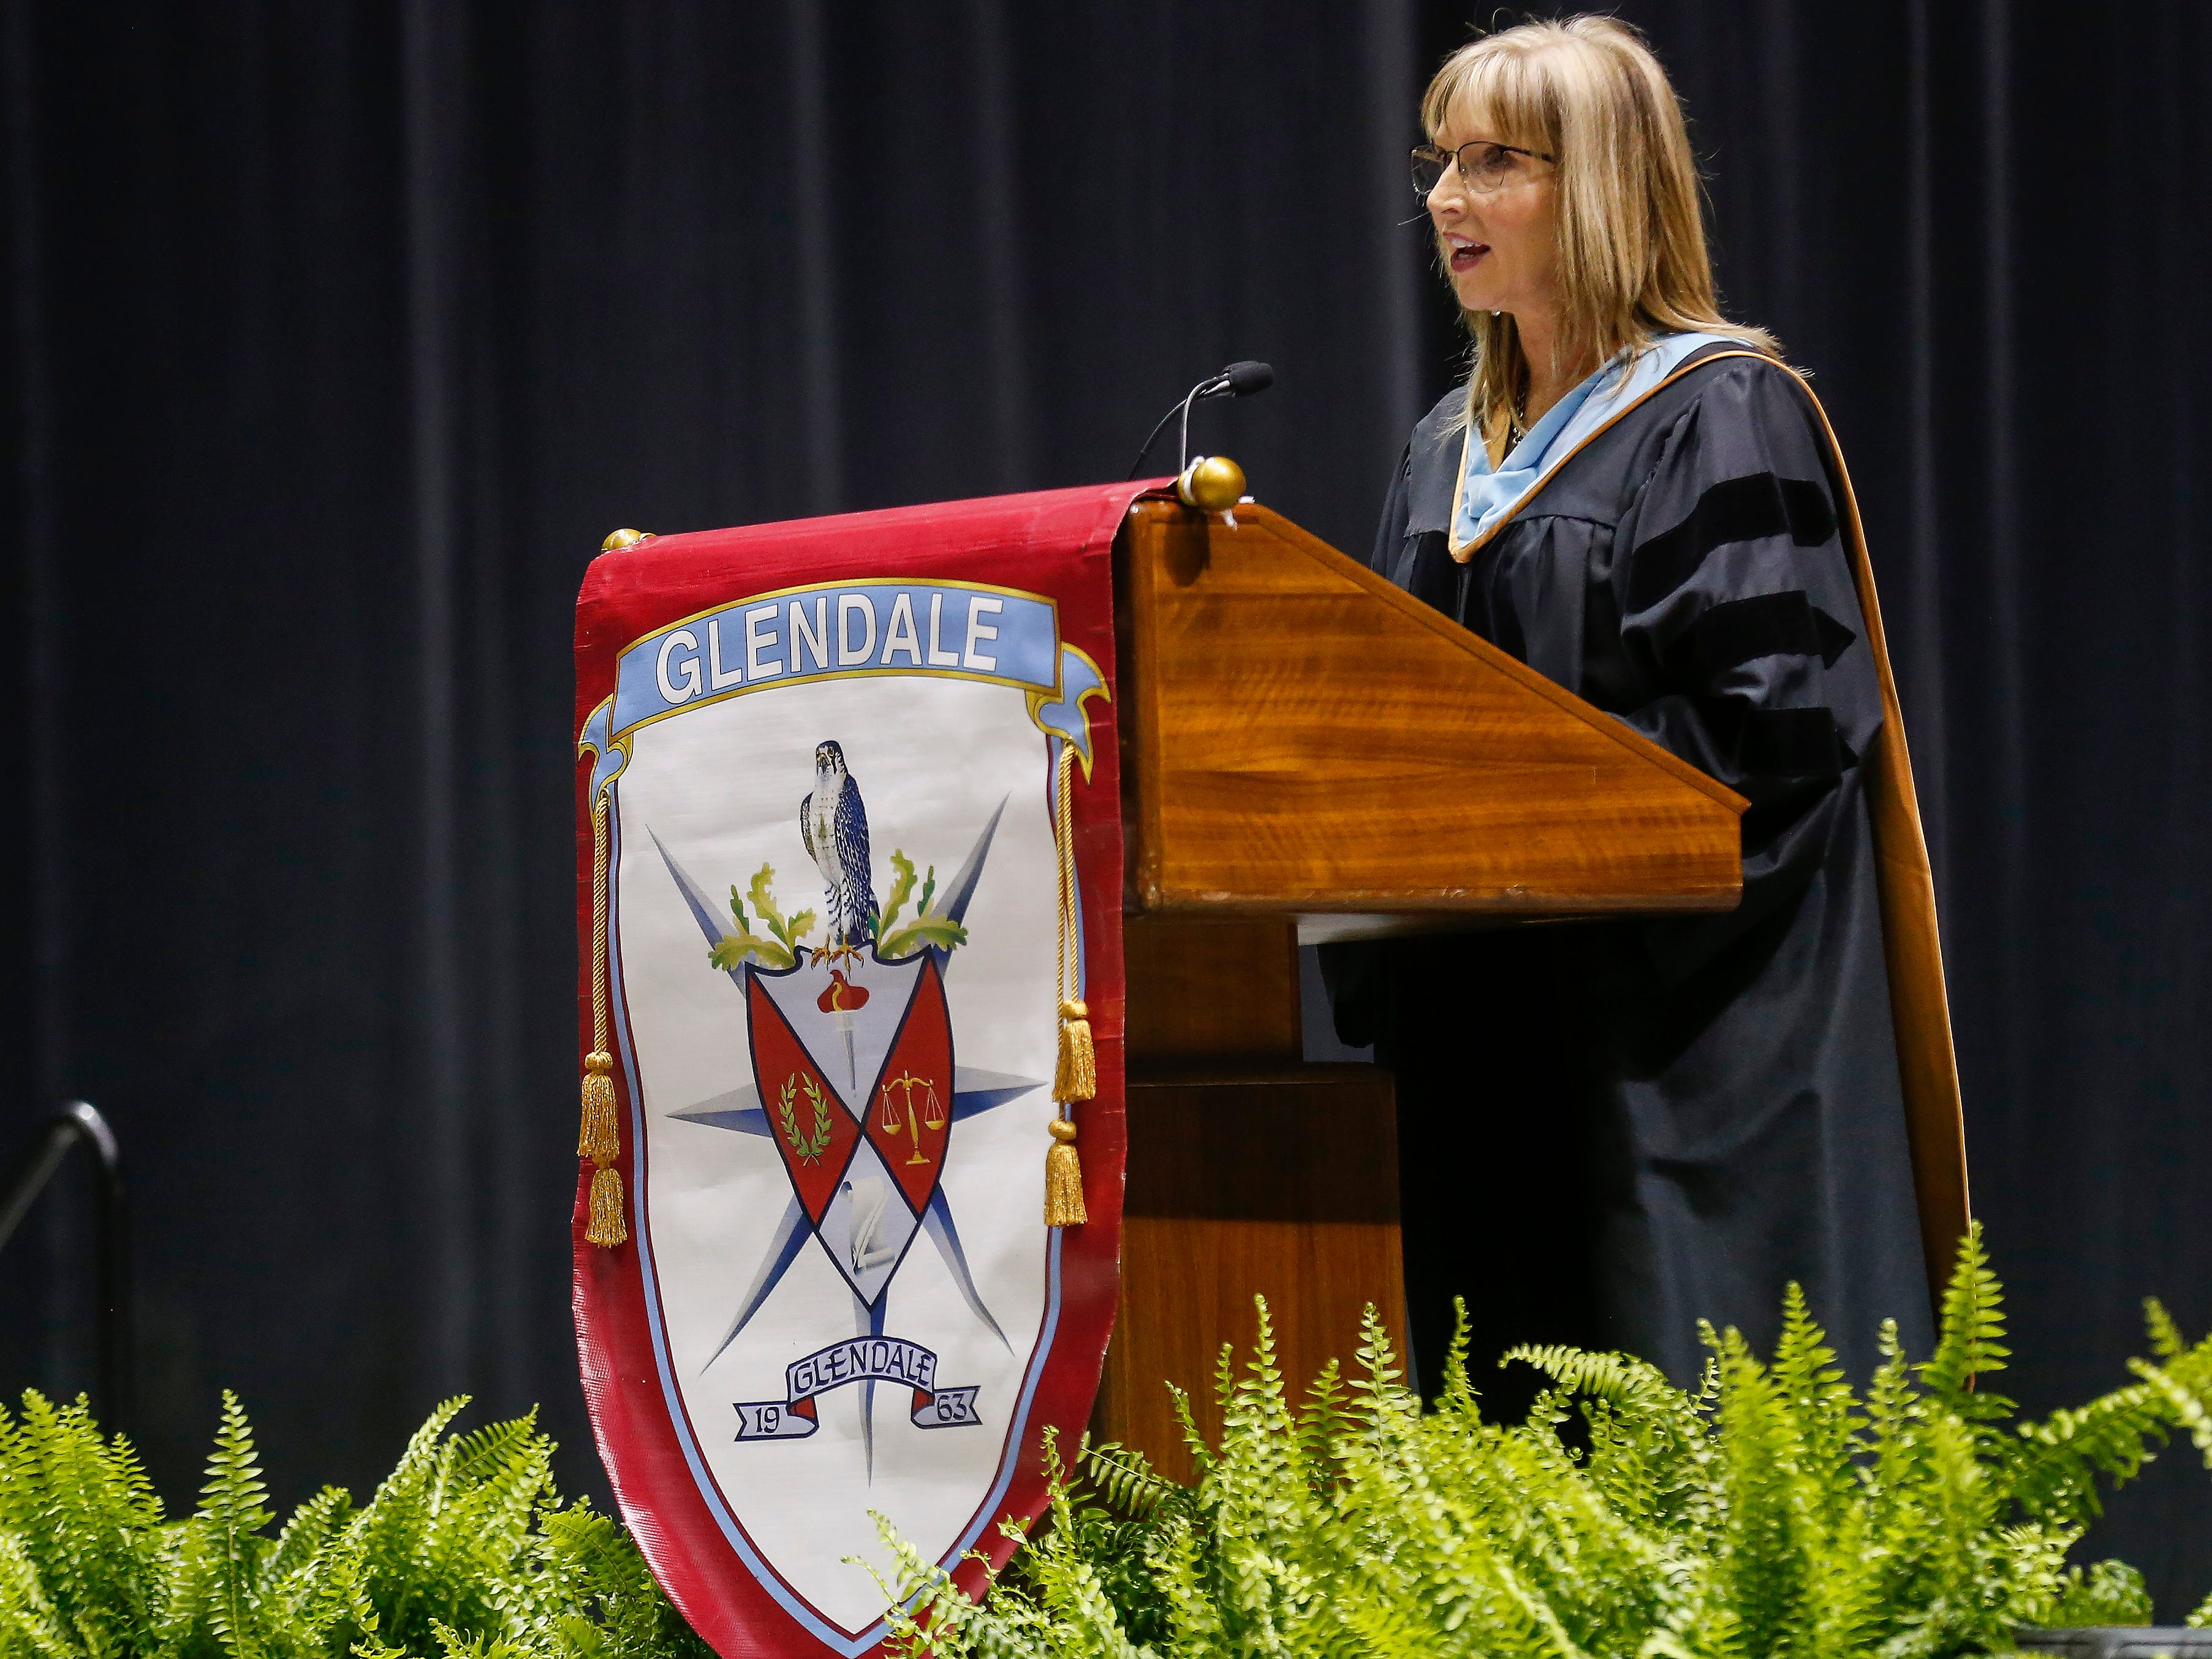 Principal Natalie Cauldwell speaks during Glendale High School's Commencement Ceremony at JQH Arena on Thursday, May 9, 2019.